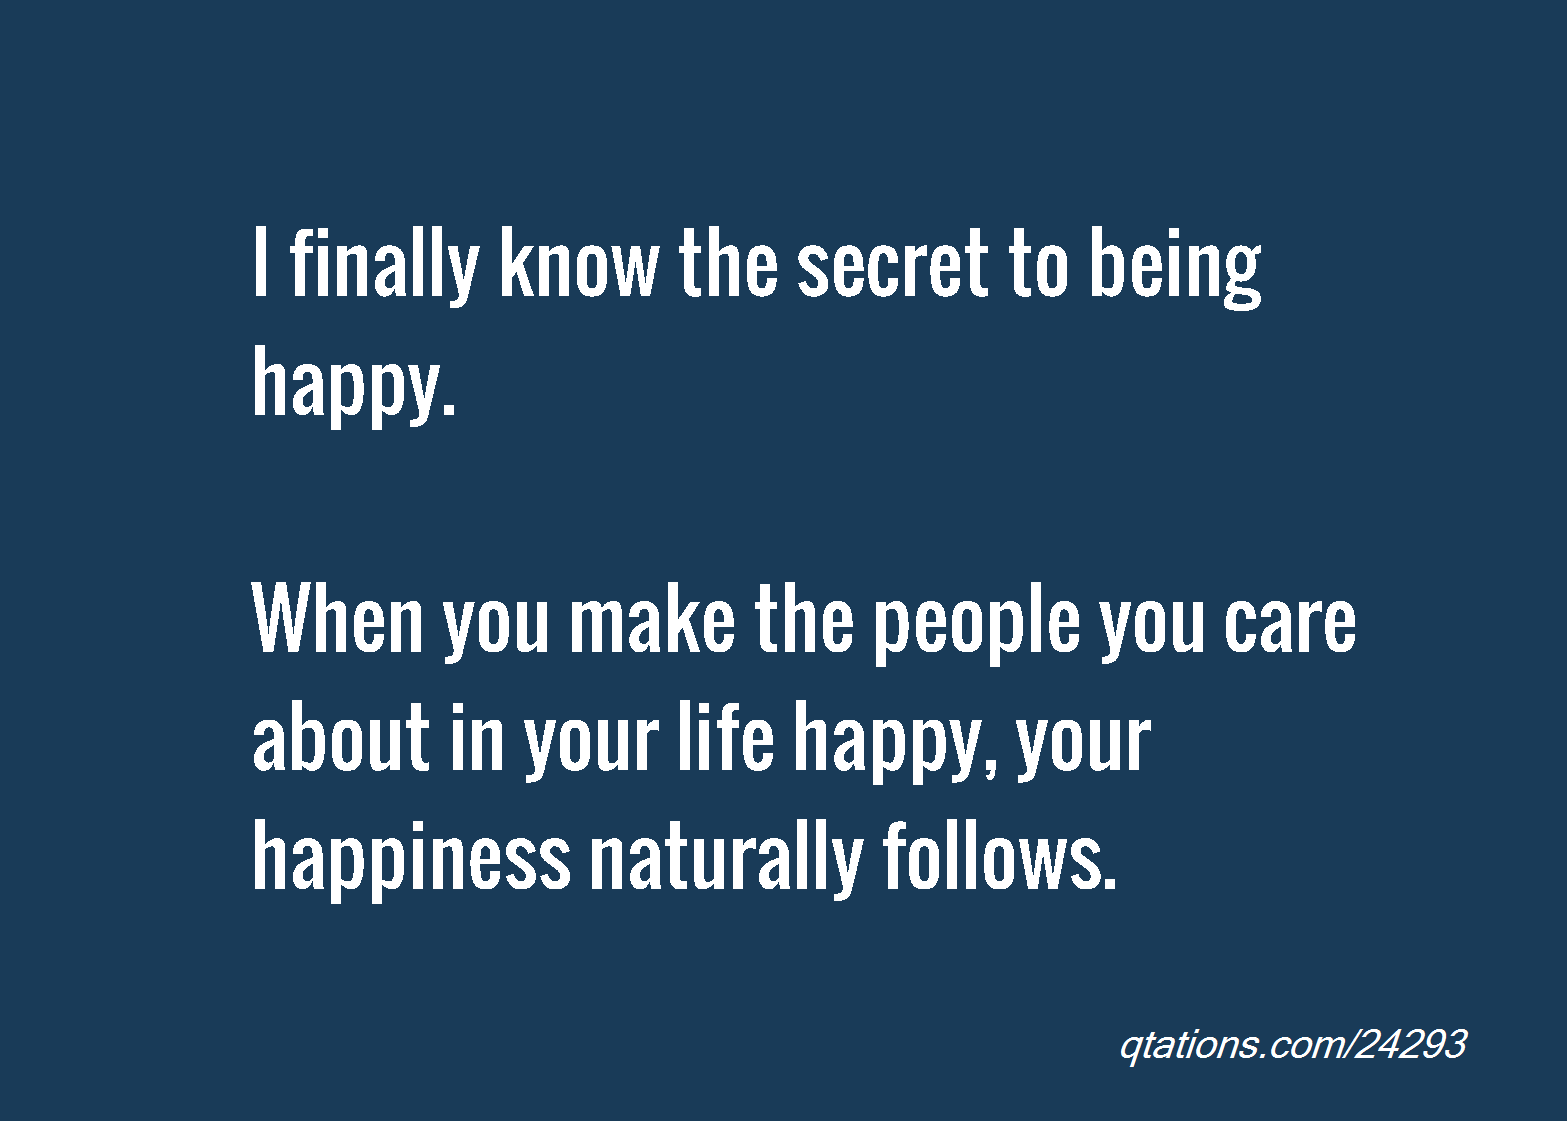 Quotes About Finally Being Happy. QuotesGram